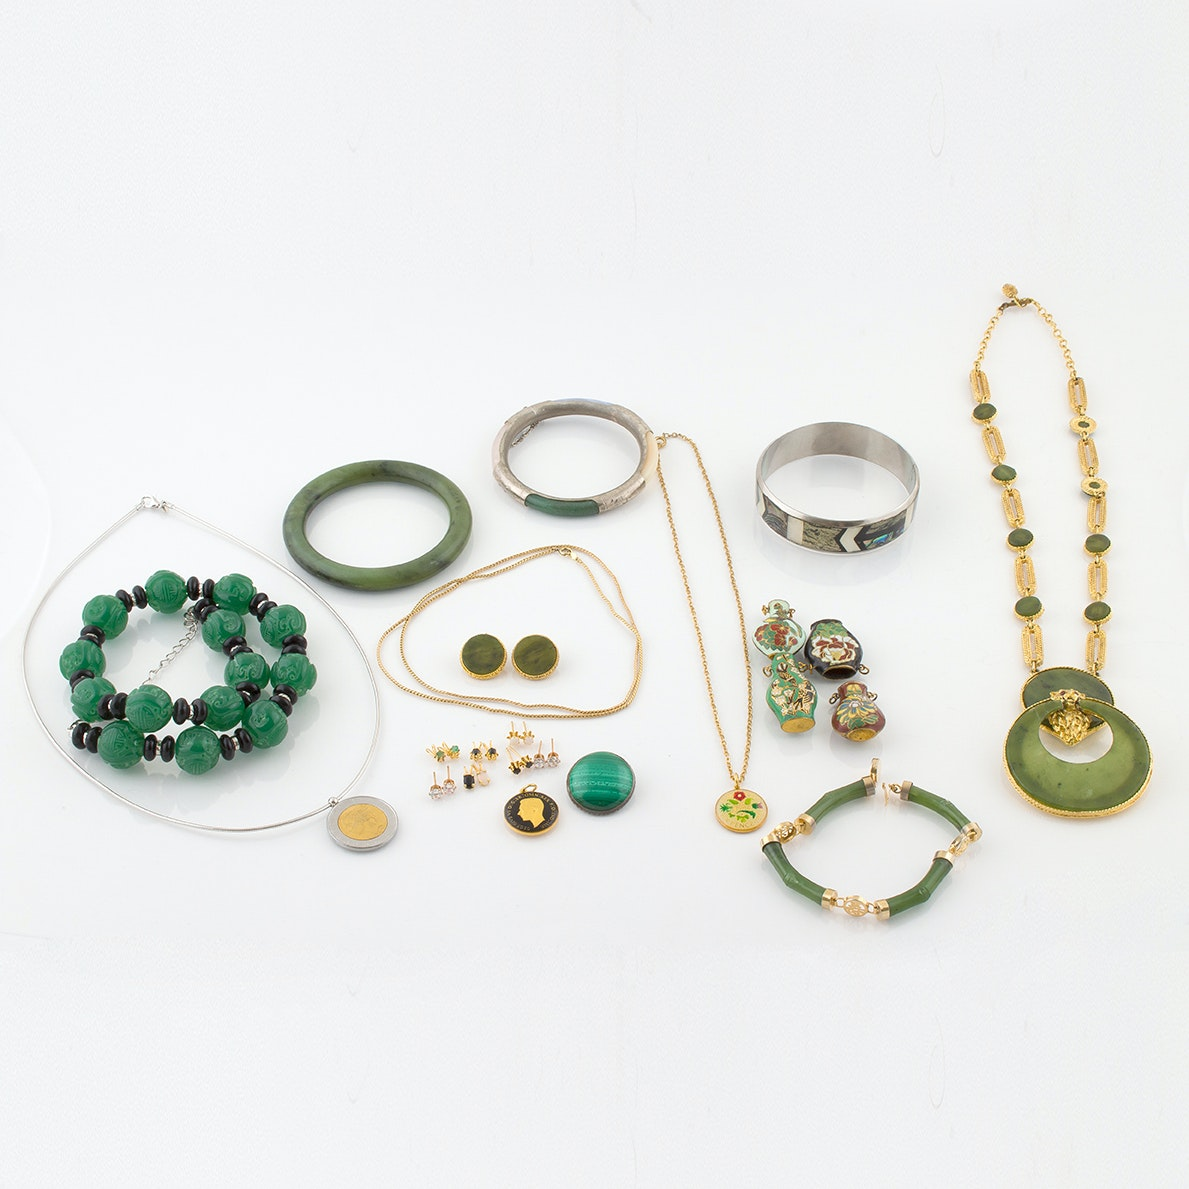 Collection of Beaded and Enamel Jewelry Featuring Agate and Nephrite